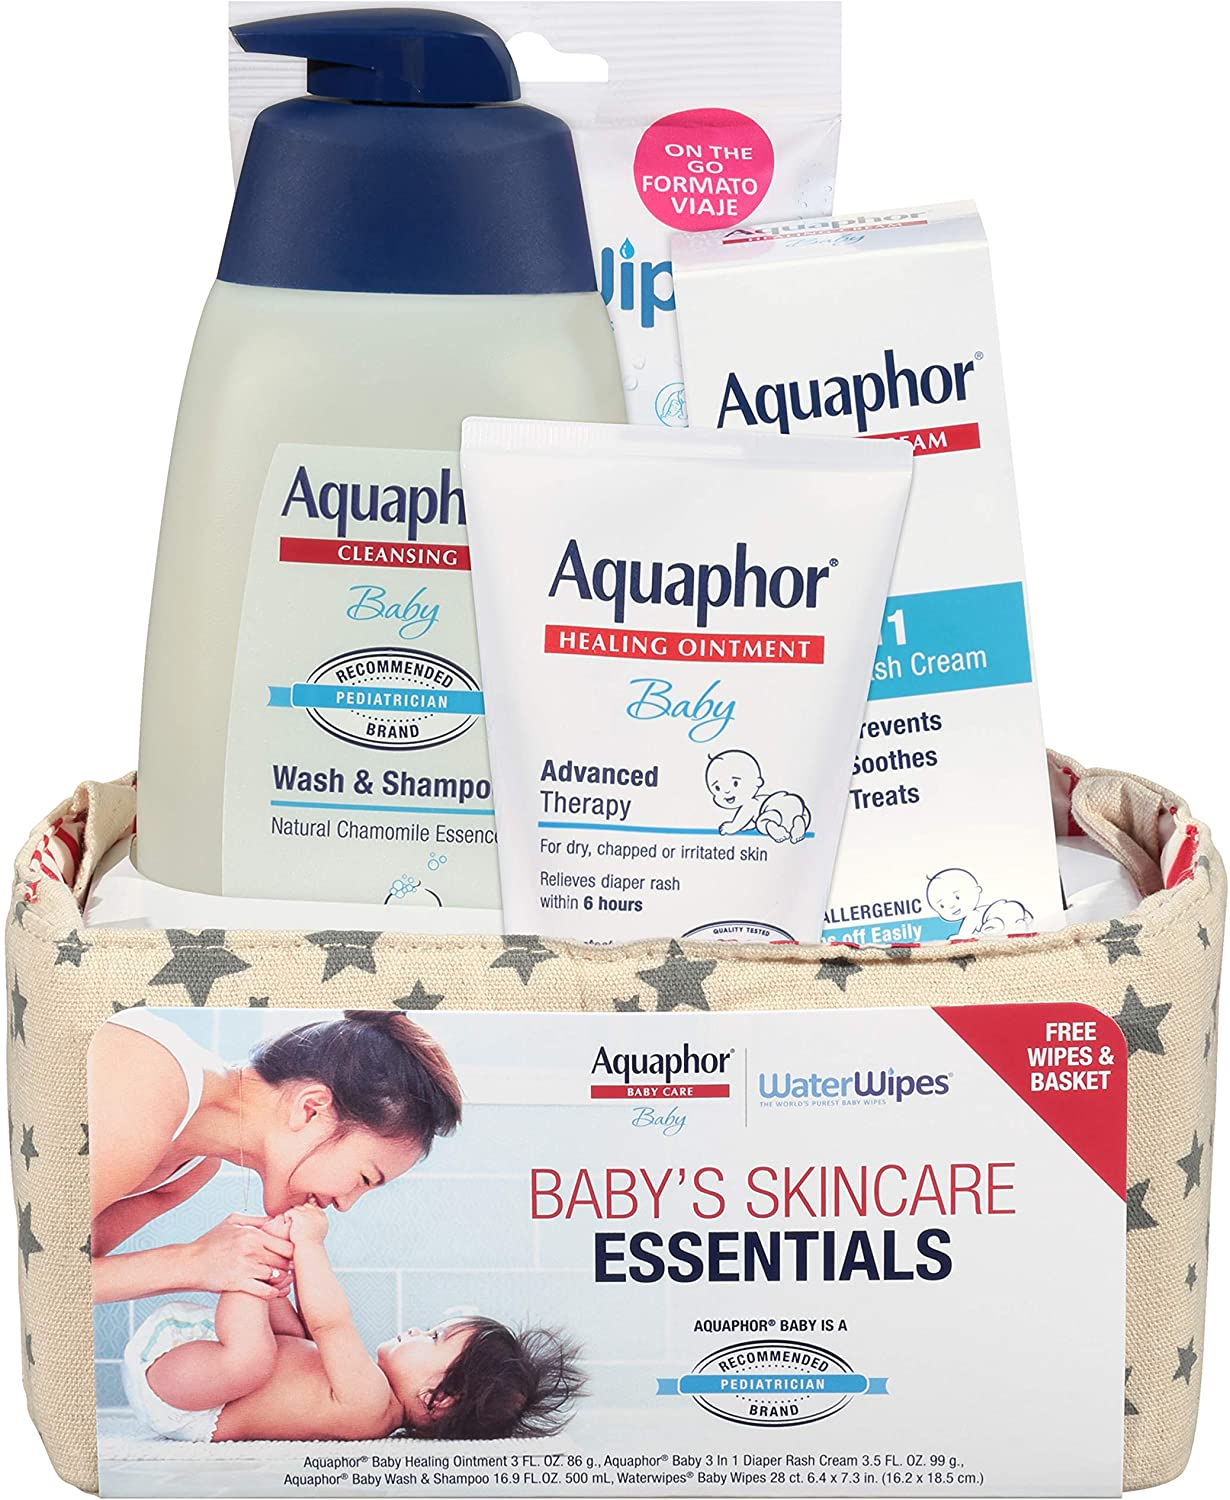 Aquaphor Baby Welcome Gift Set Included Bag WaterWipes Max 56% OFF and Free NEW before selling ☆